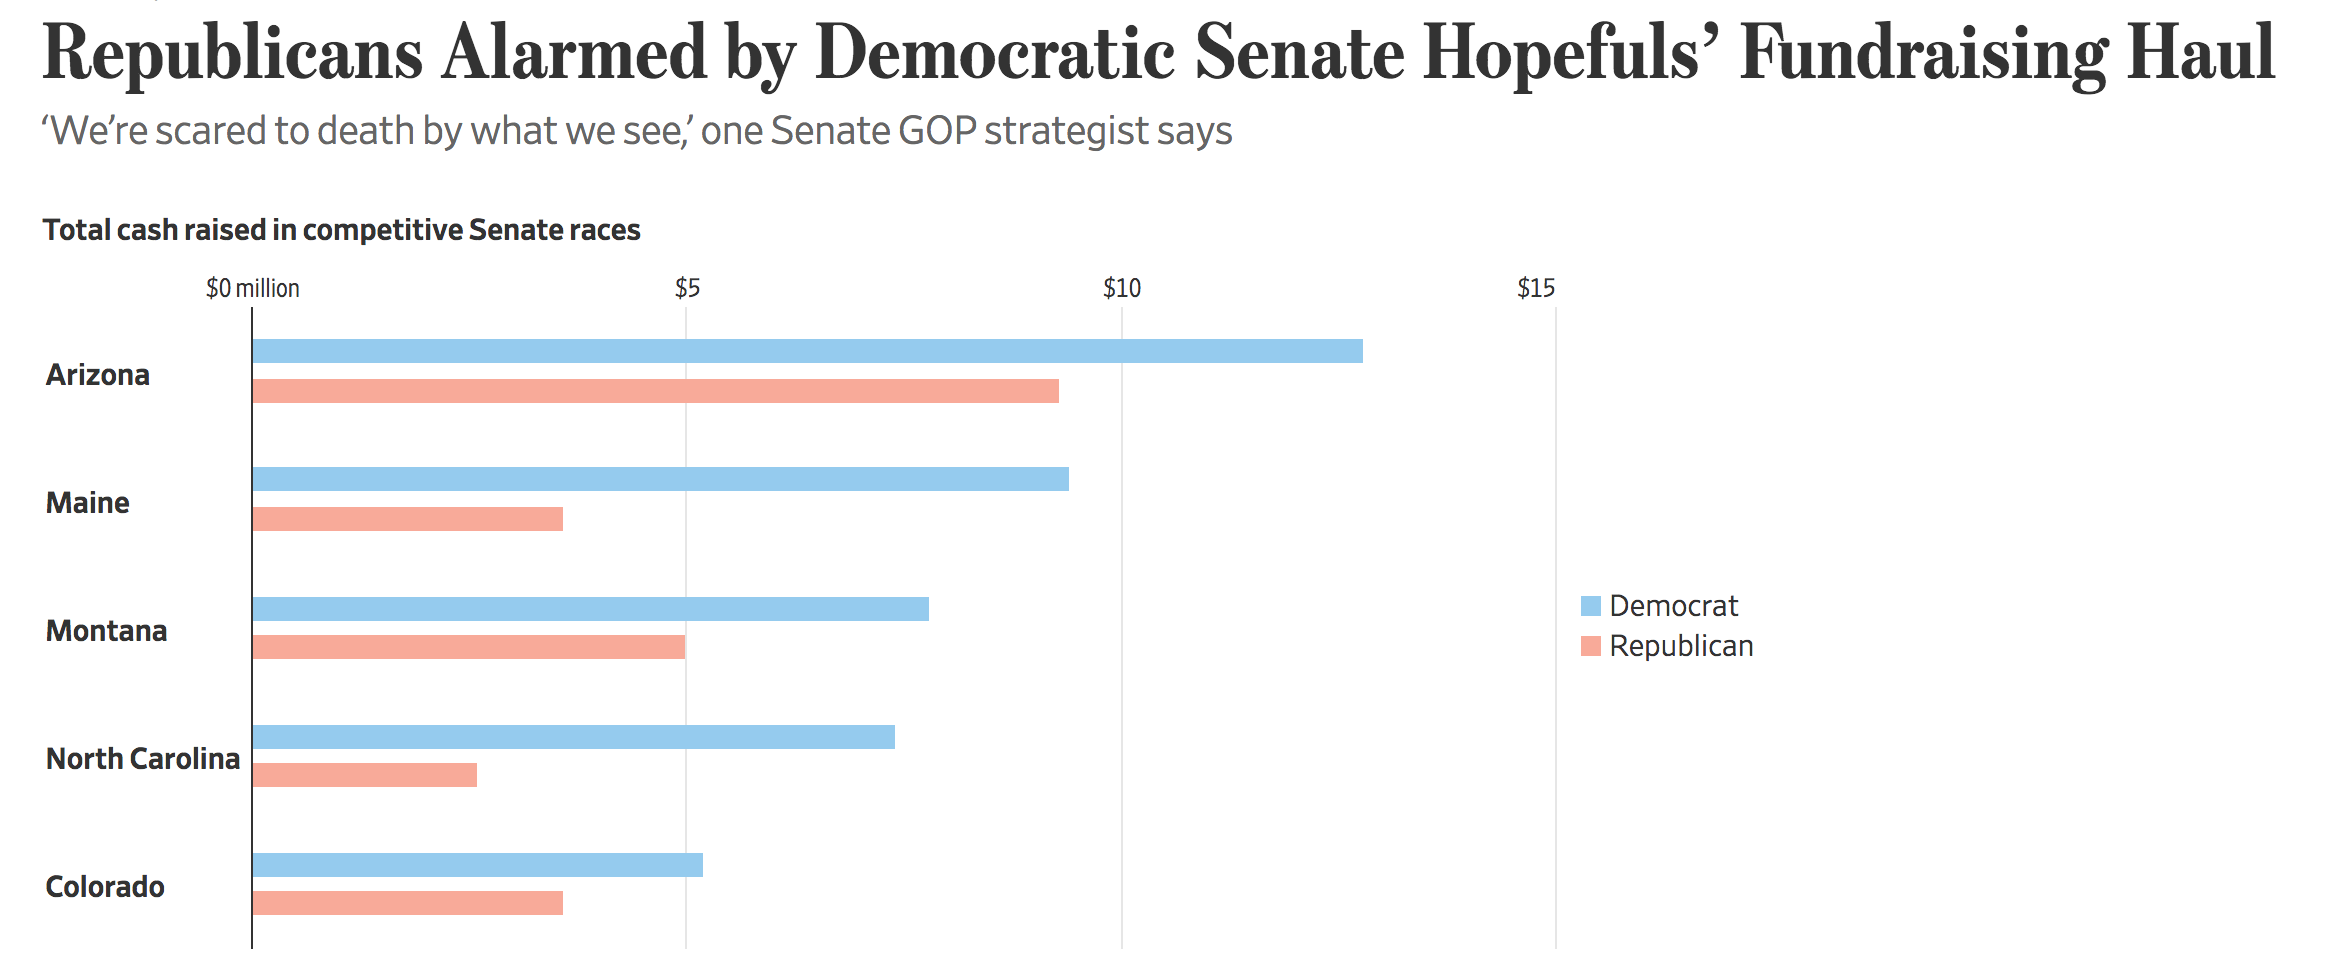 Republicans Alarmed by Democratic Senate Hopefuls' Fundraising Haul